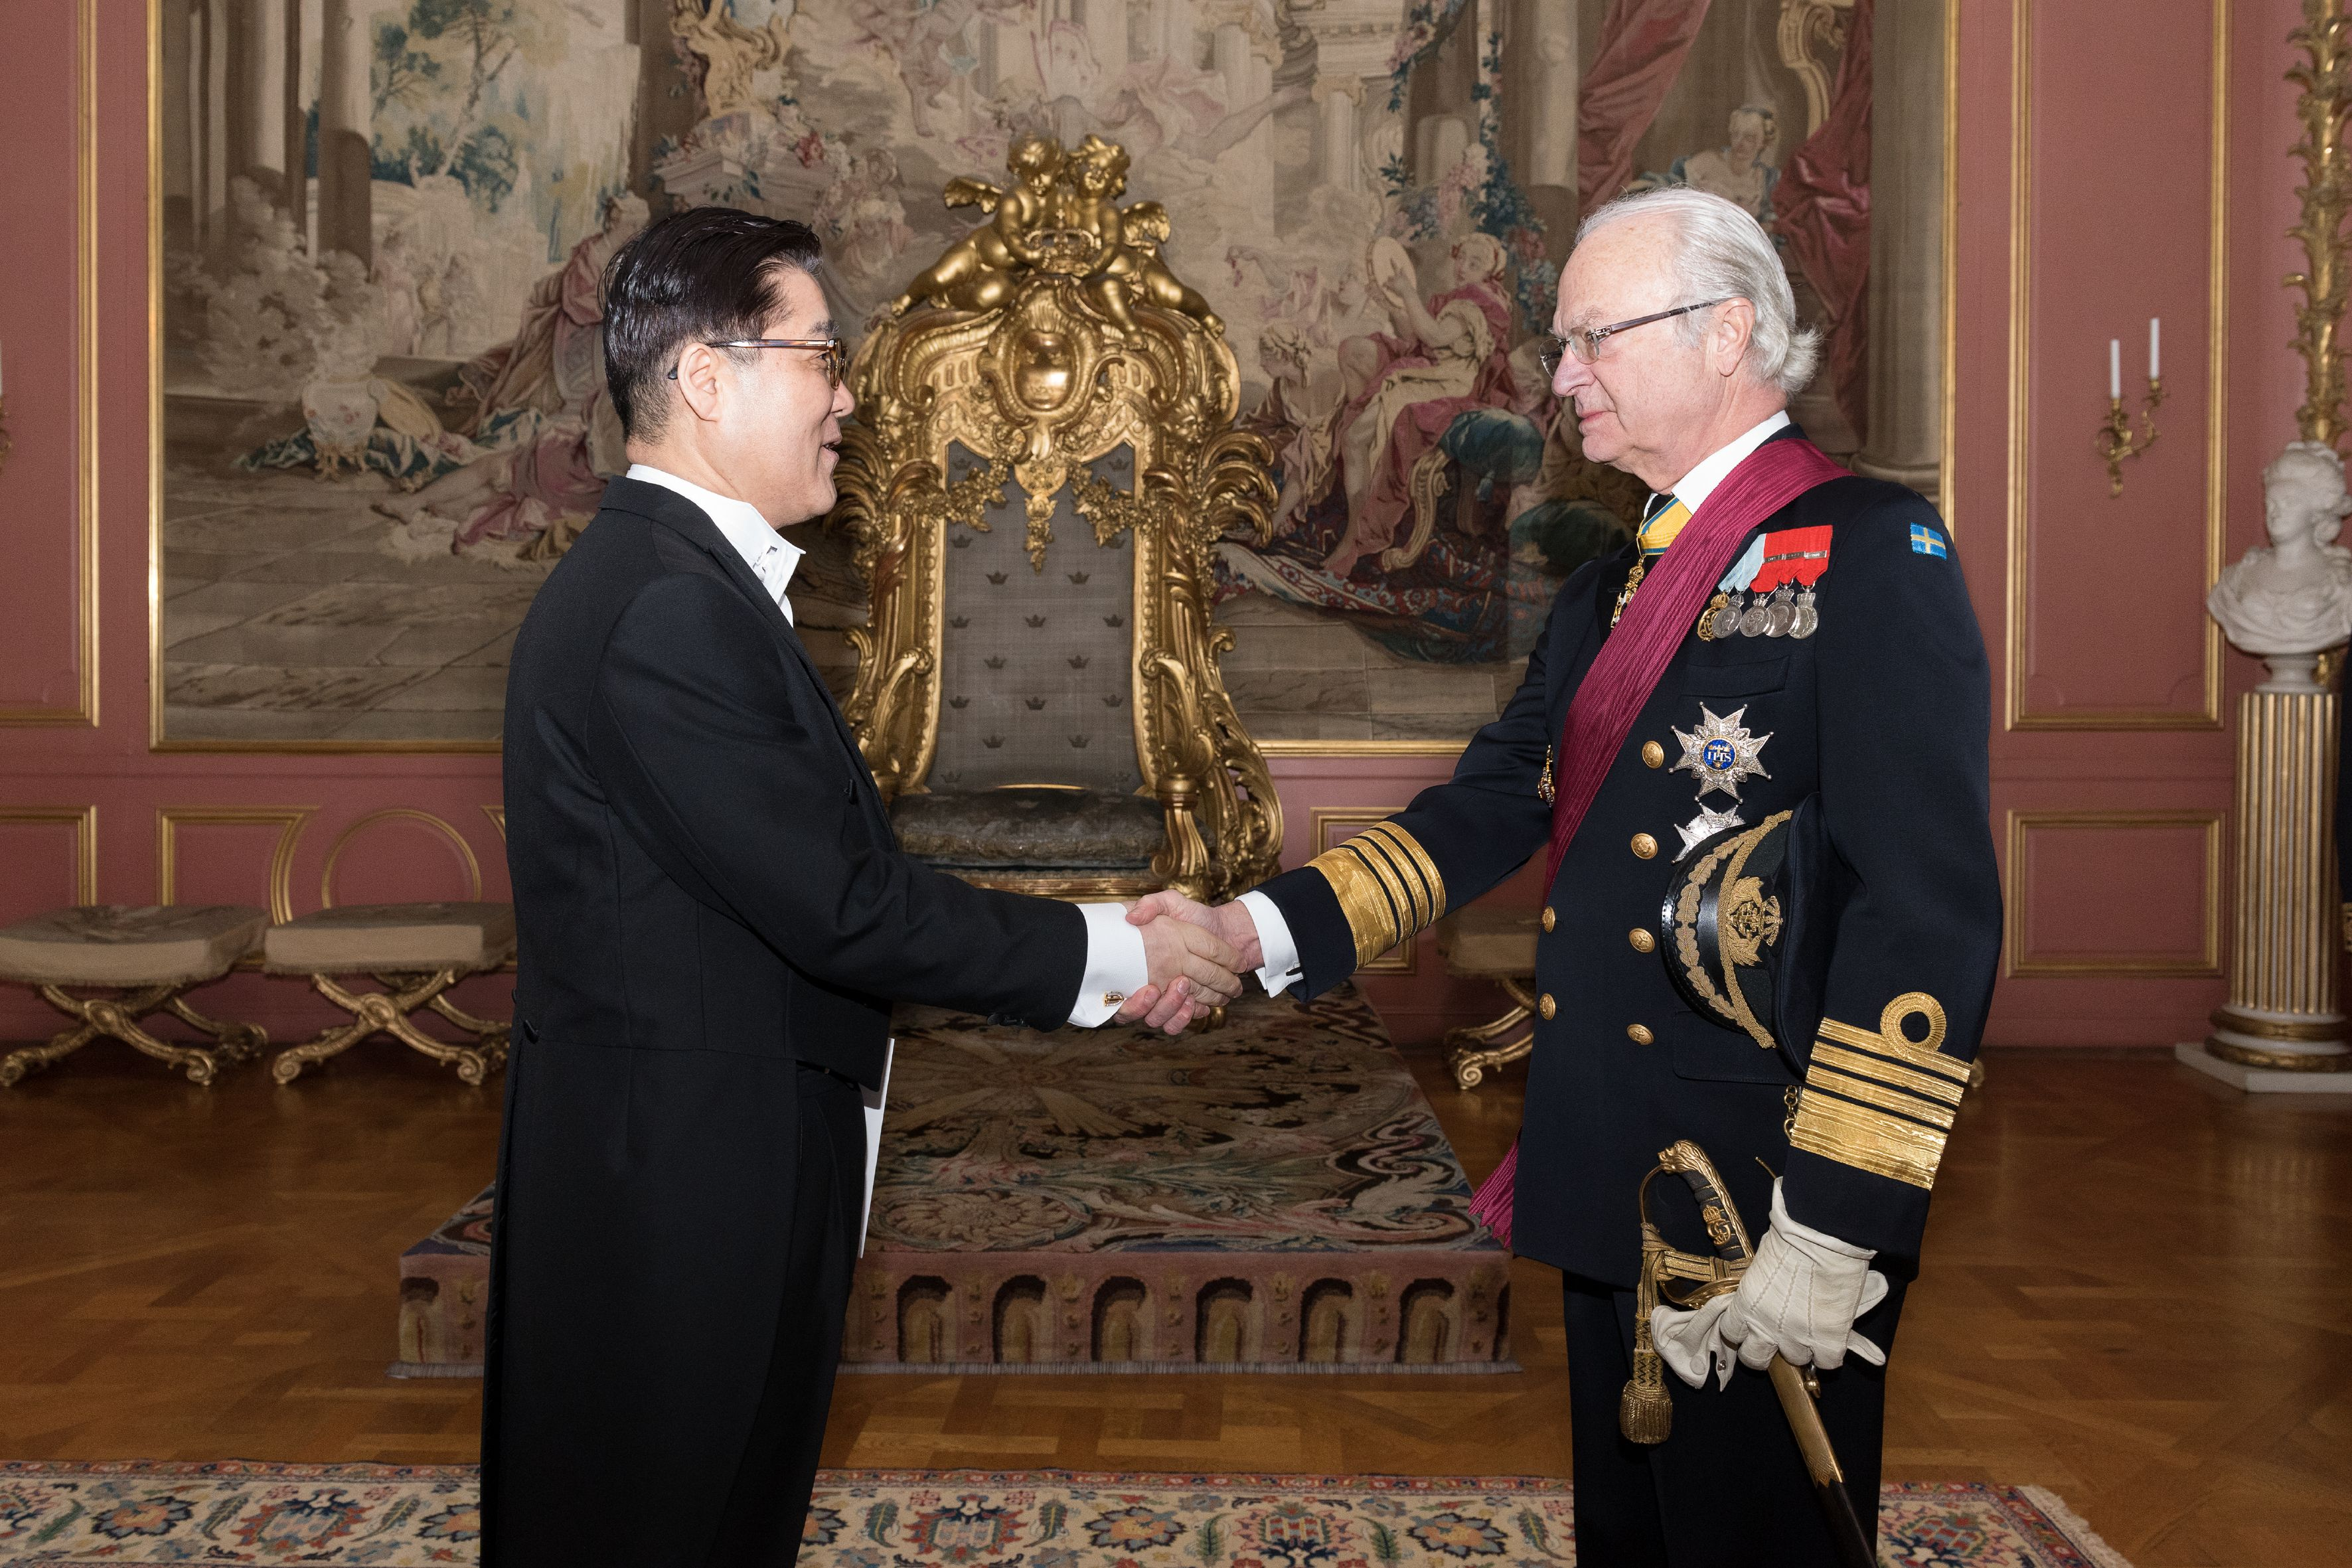 Ambassador Lee presents Letters of Credence to H.M. King Carl XVI Gustaf